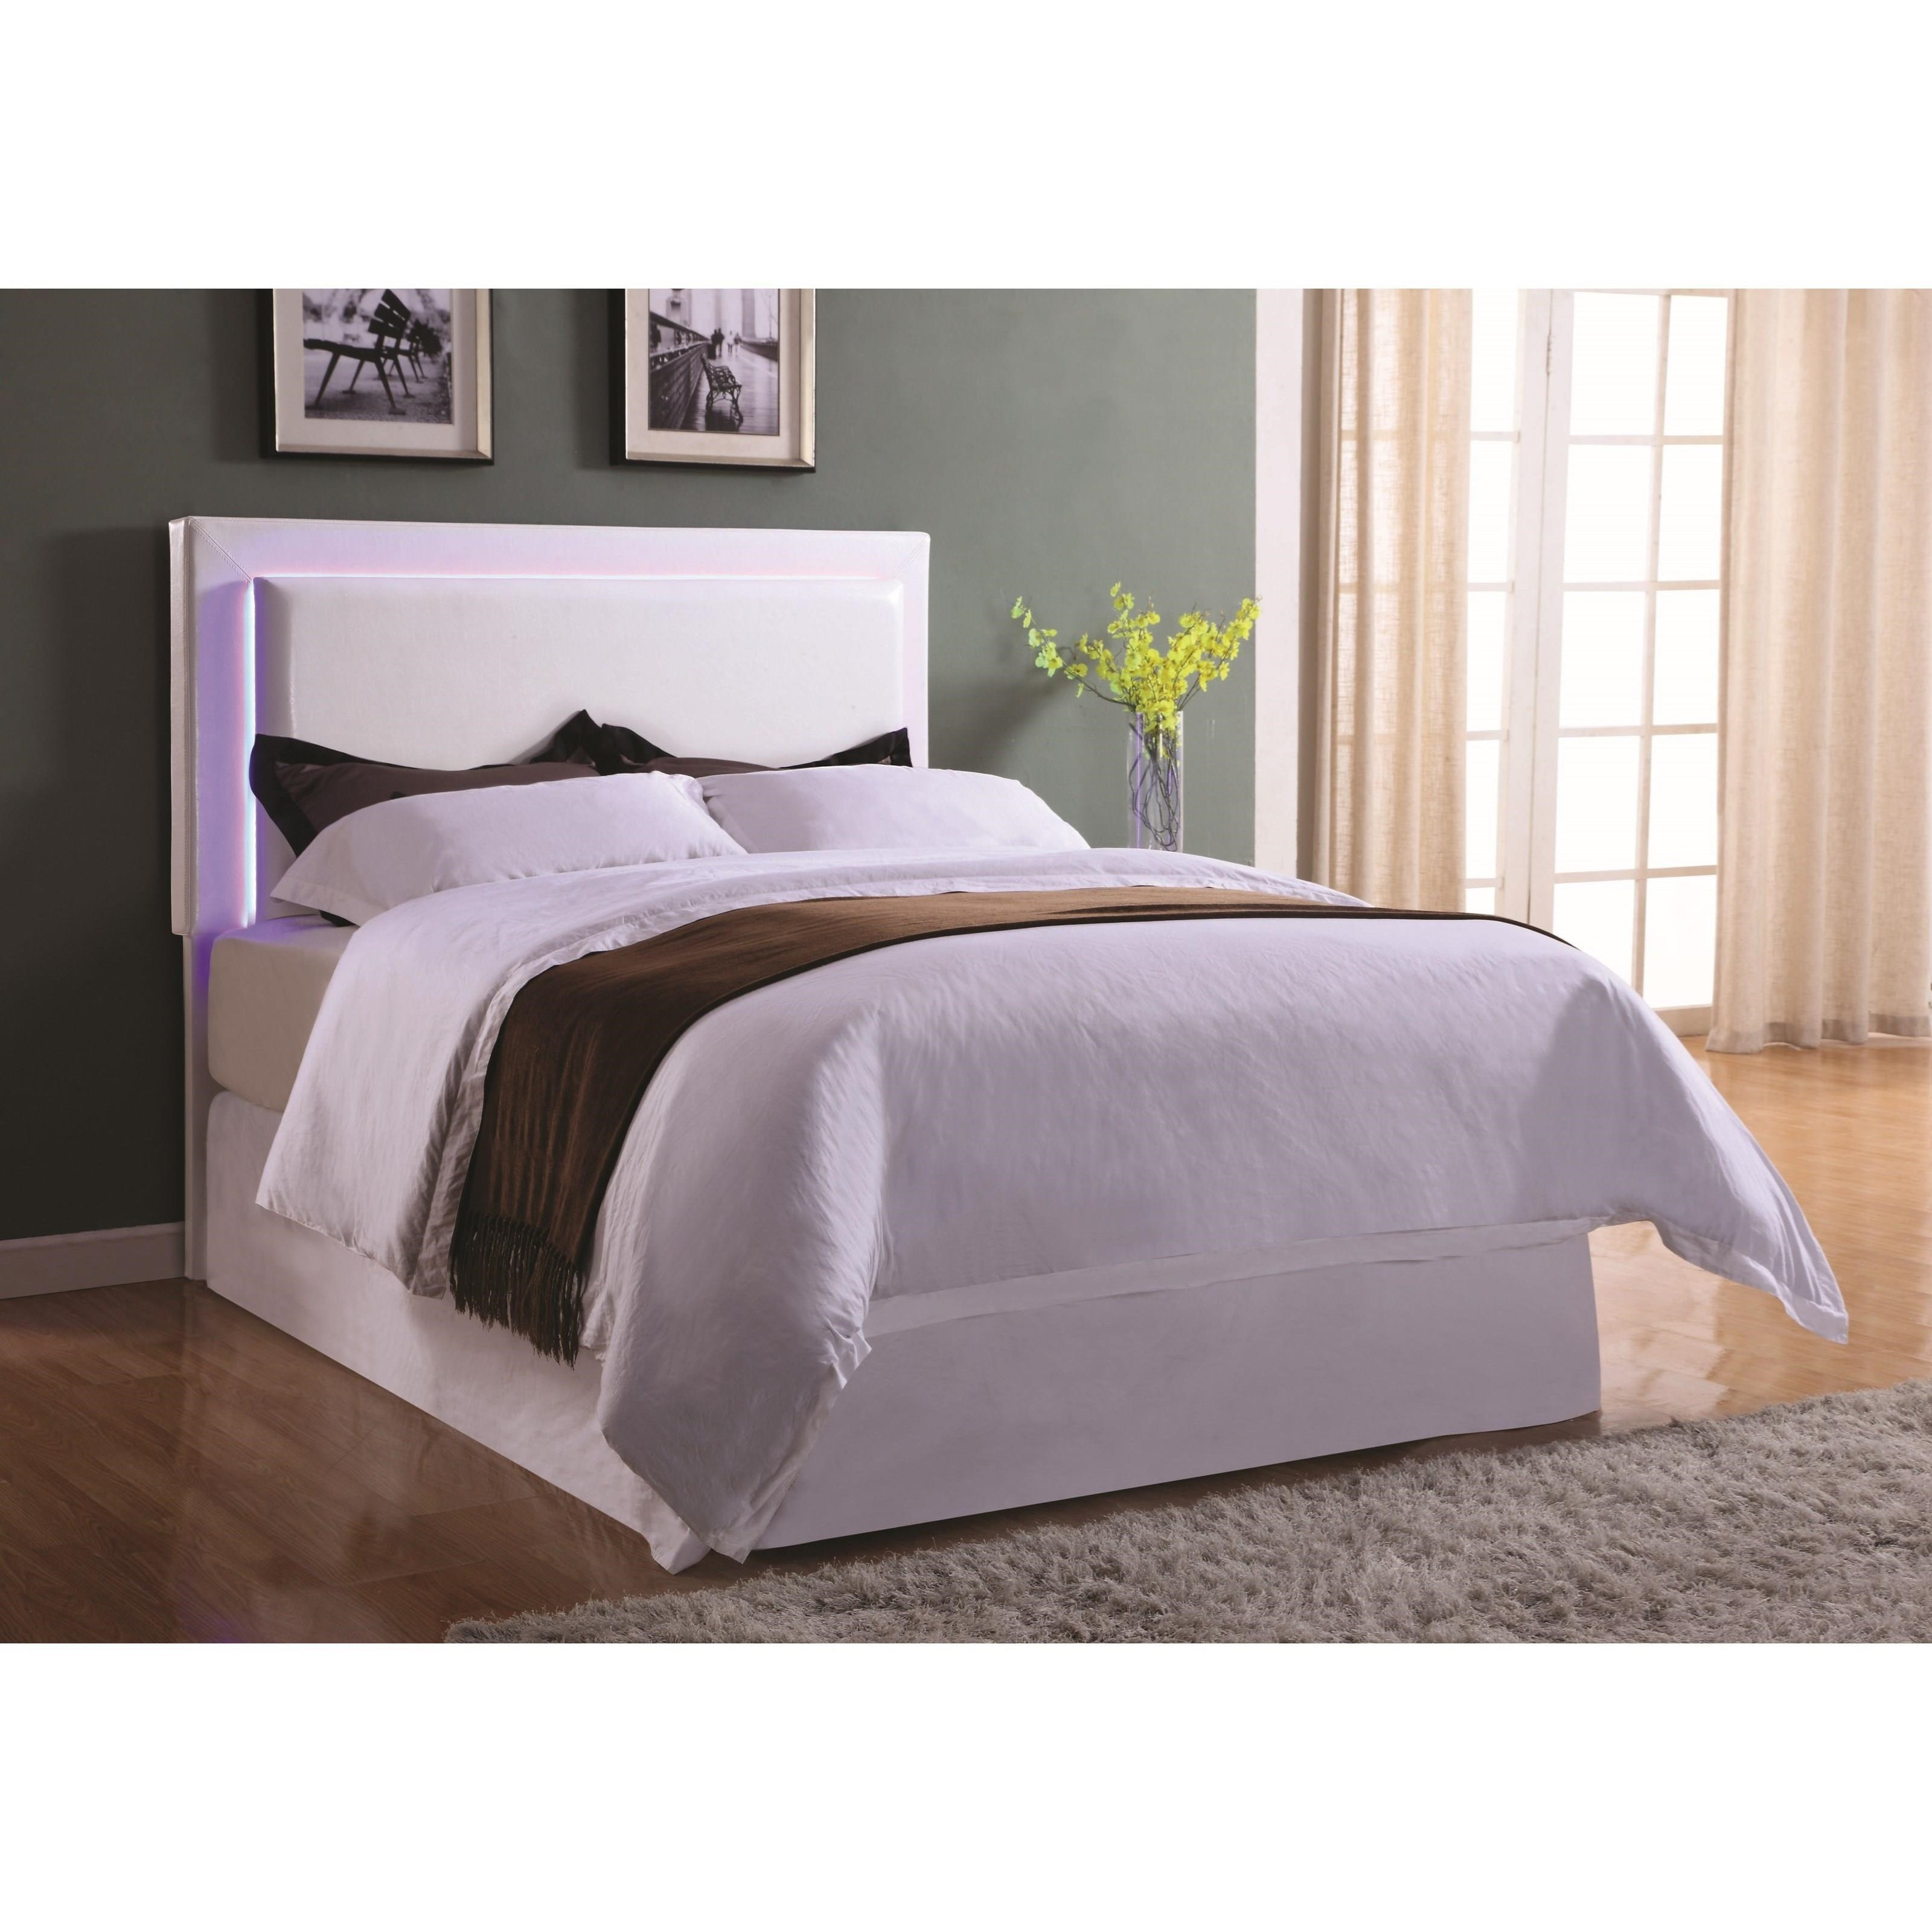 Coaster Upholstered Beds Twin Headboard - Item Number: 300603T